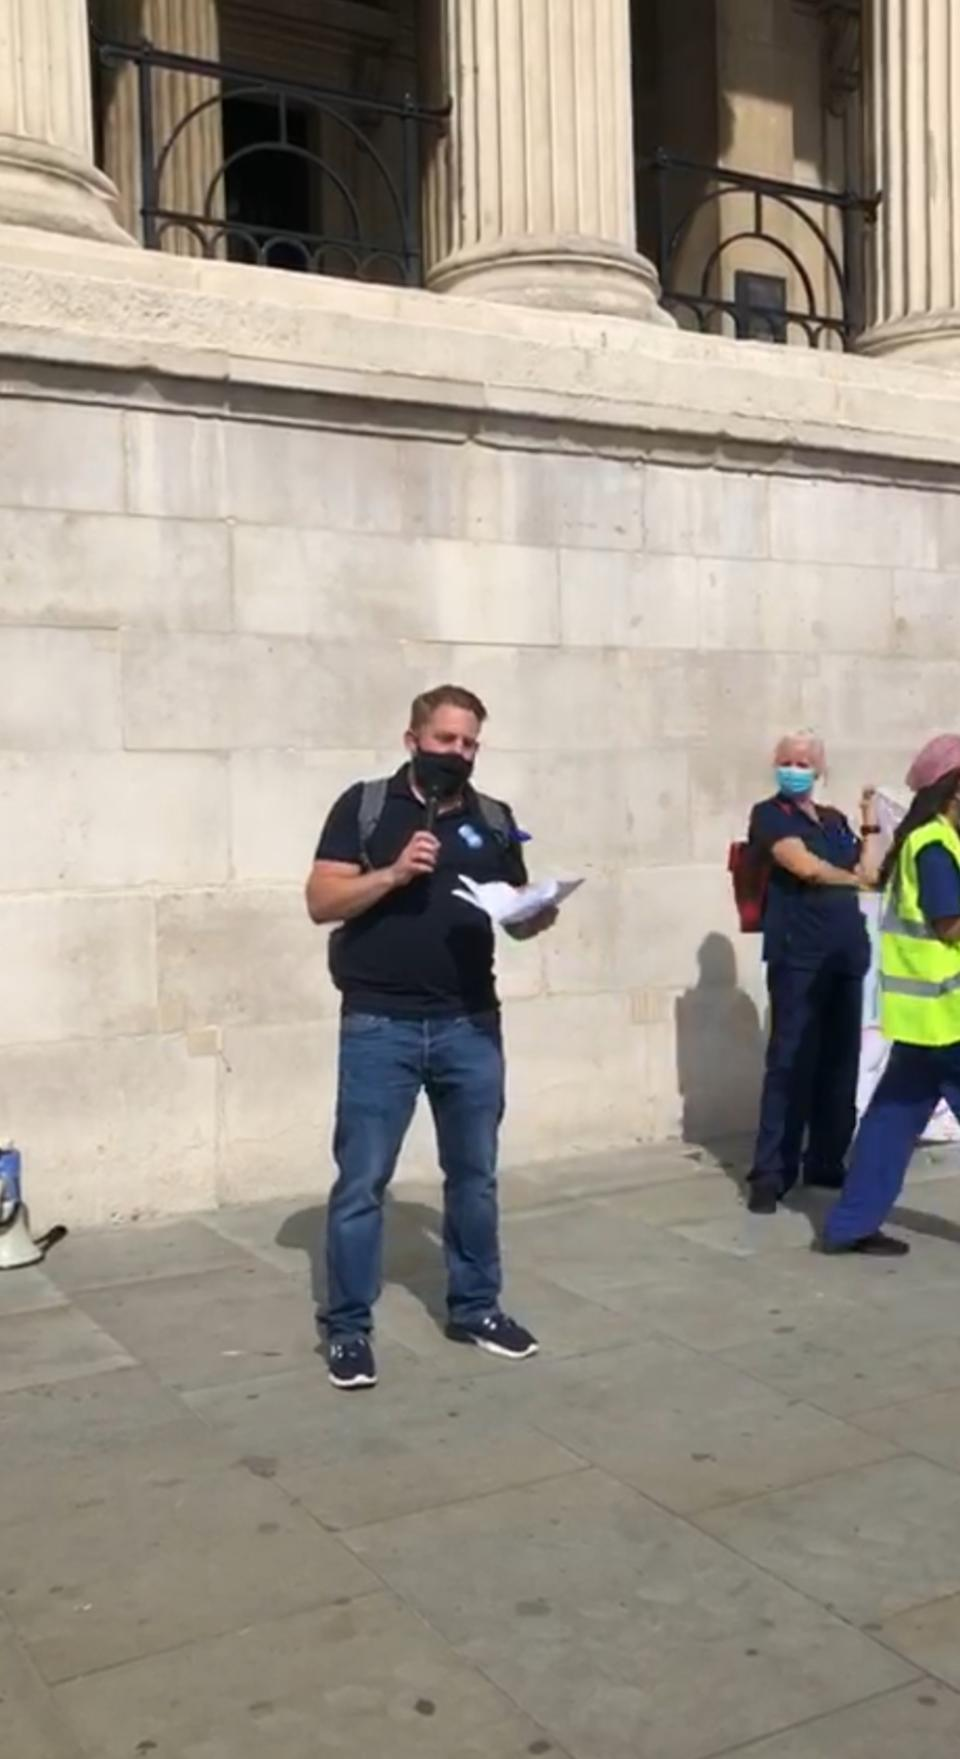 Matt Smith at NHS pay and conditions protest